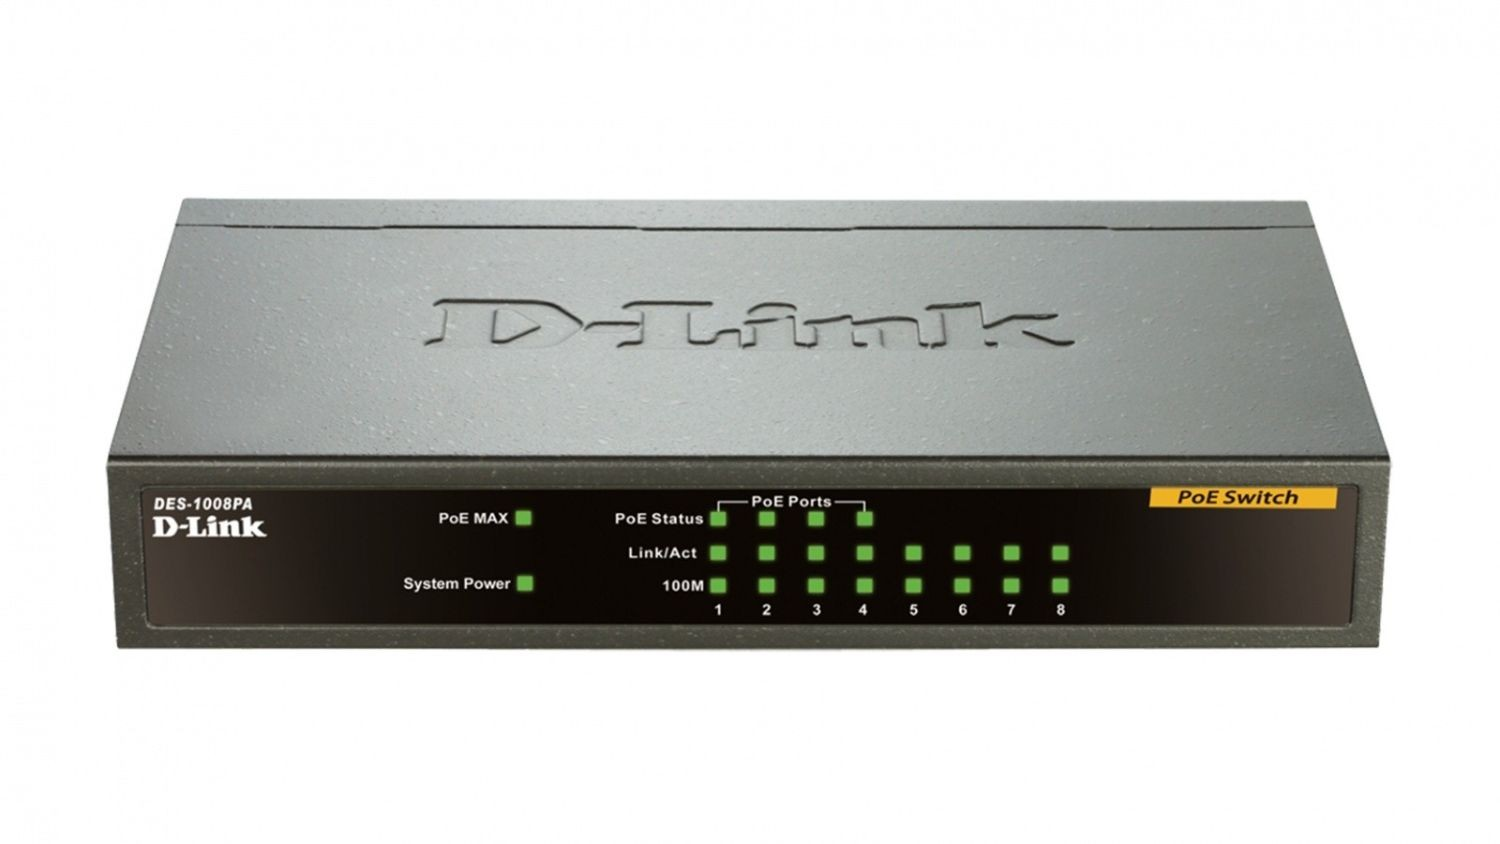 D-Link 8-port 10/100 Desktop Switch, 4 PoE Ports